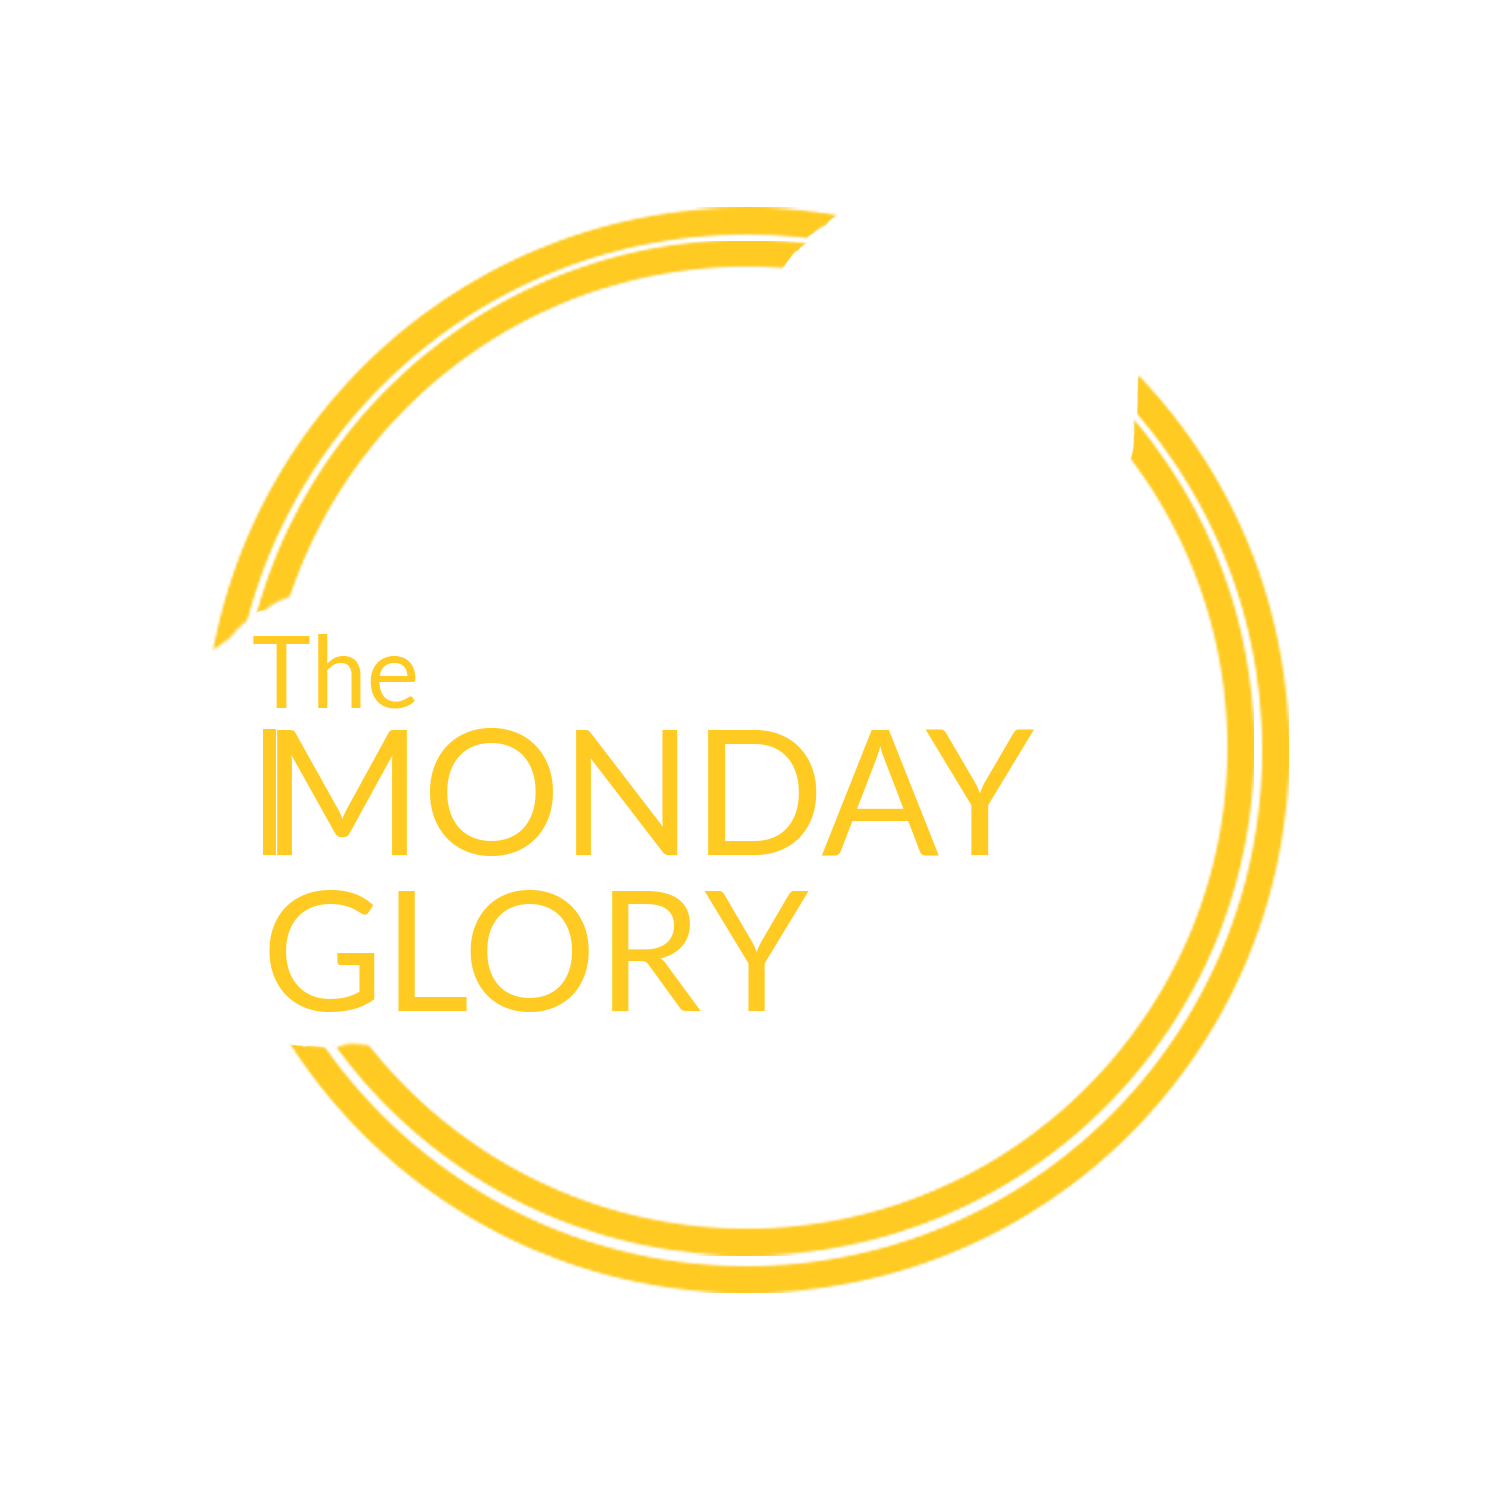 The Monday Glory